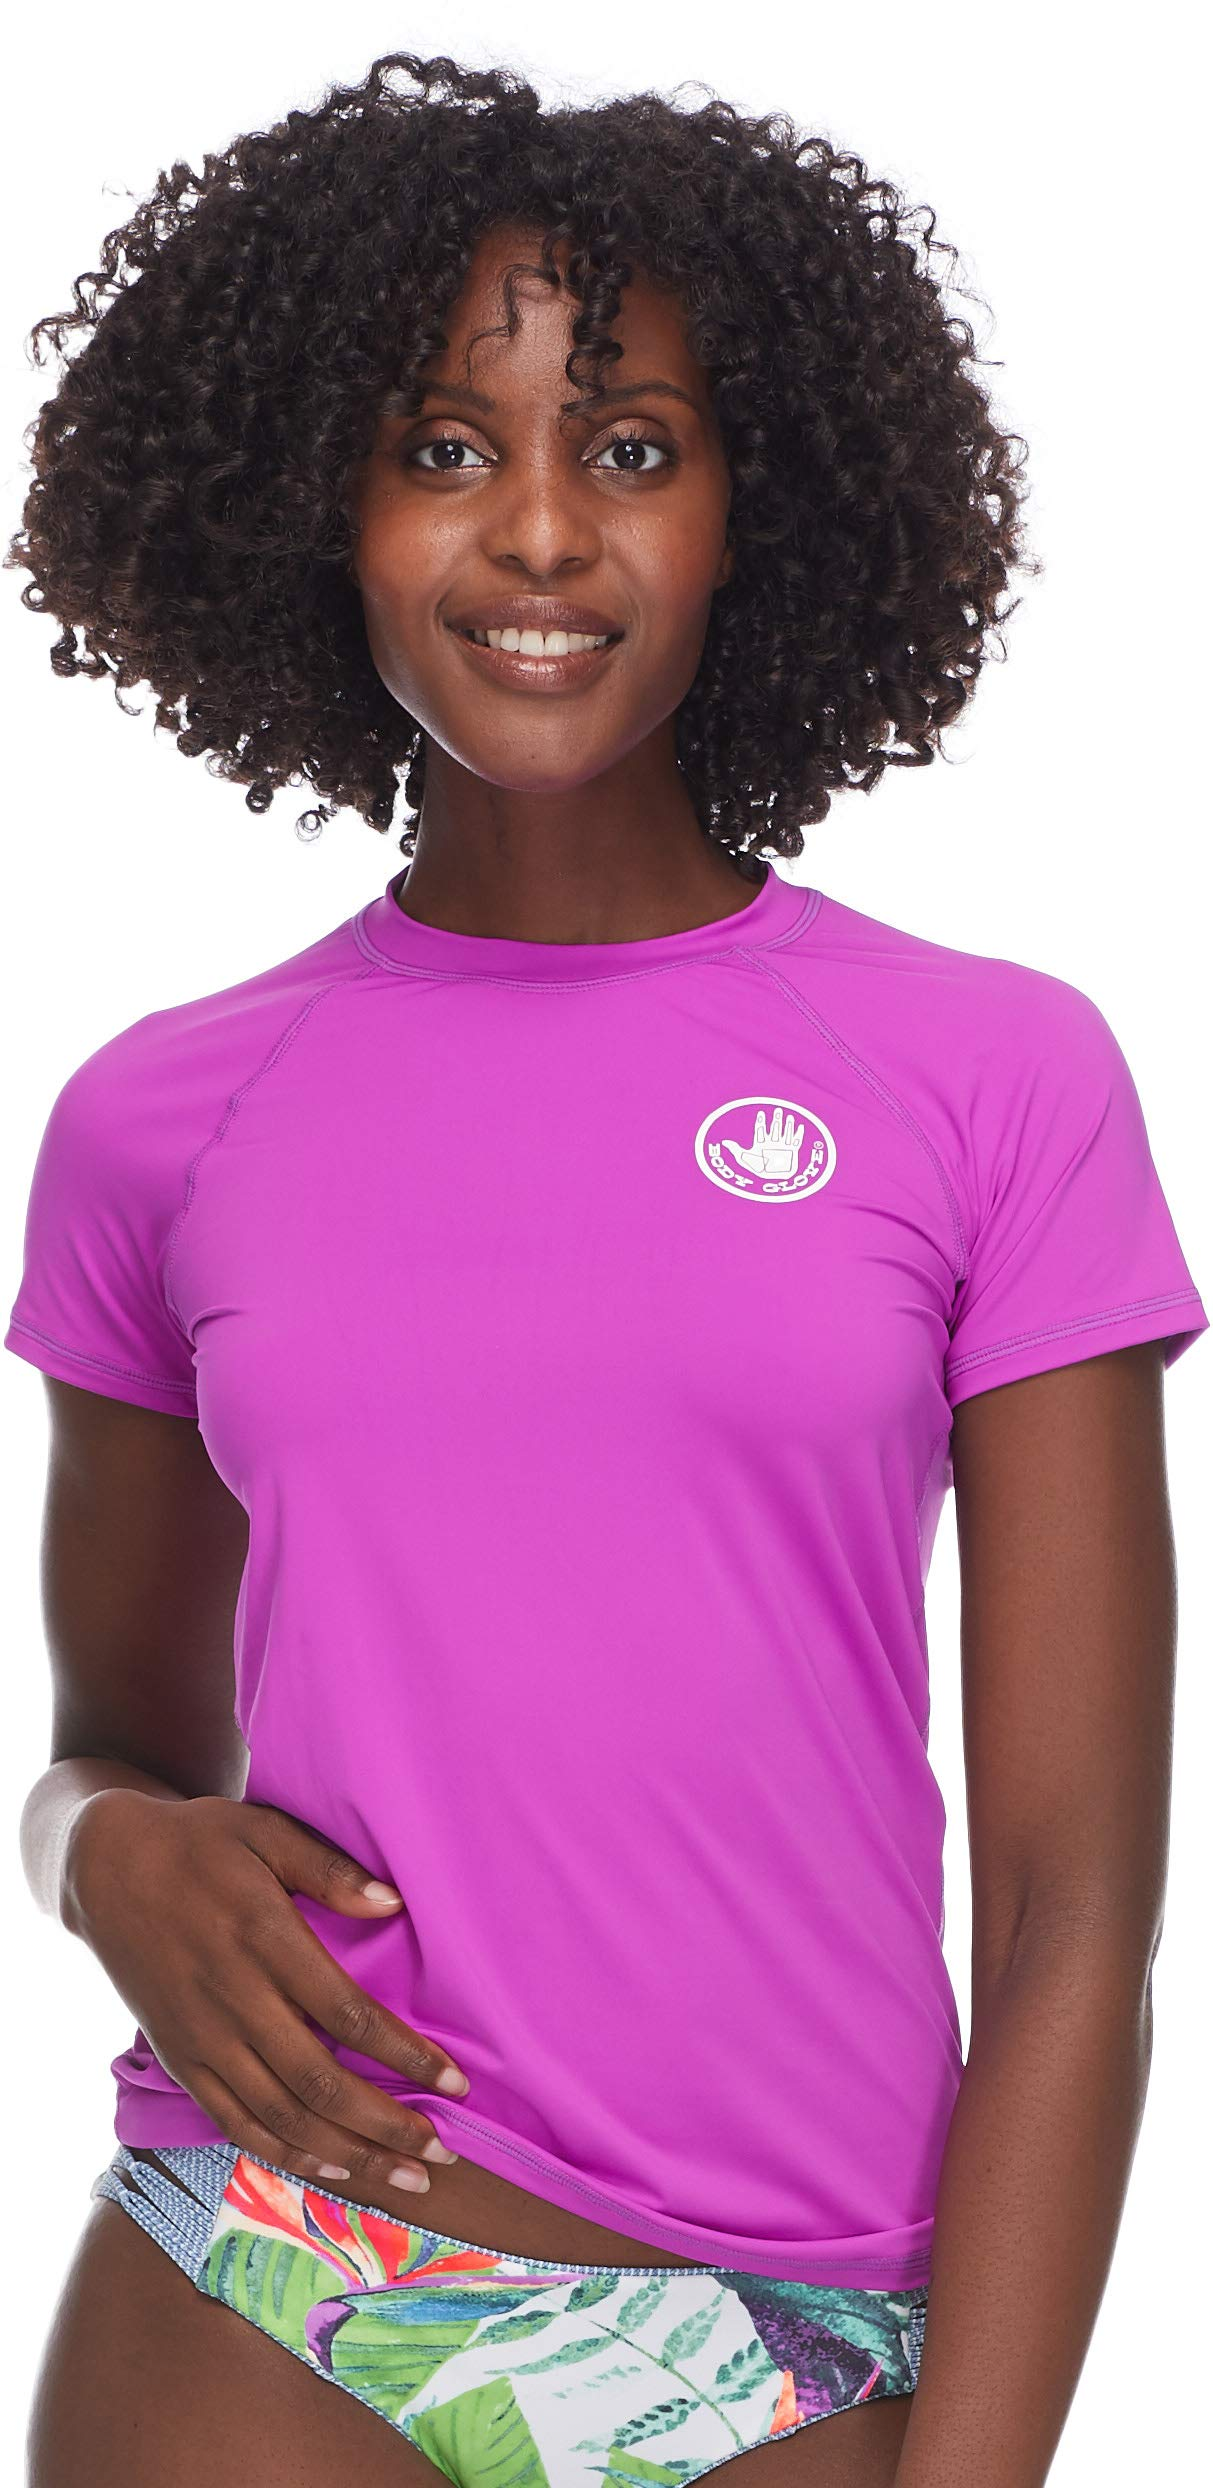 Body Glove Women's Smoothies in-Motion Solid Short Sleeve Rashguard with UPF 50 Magnolia, Large by Body Glove